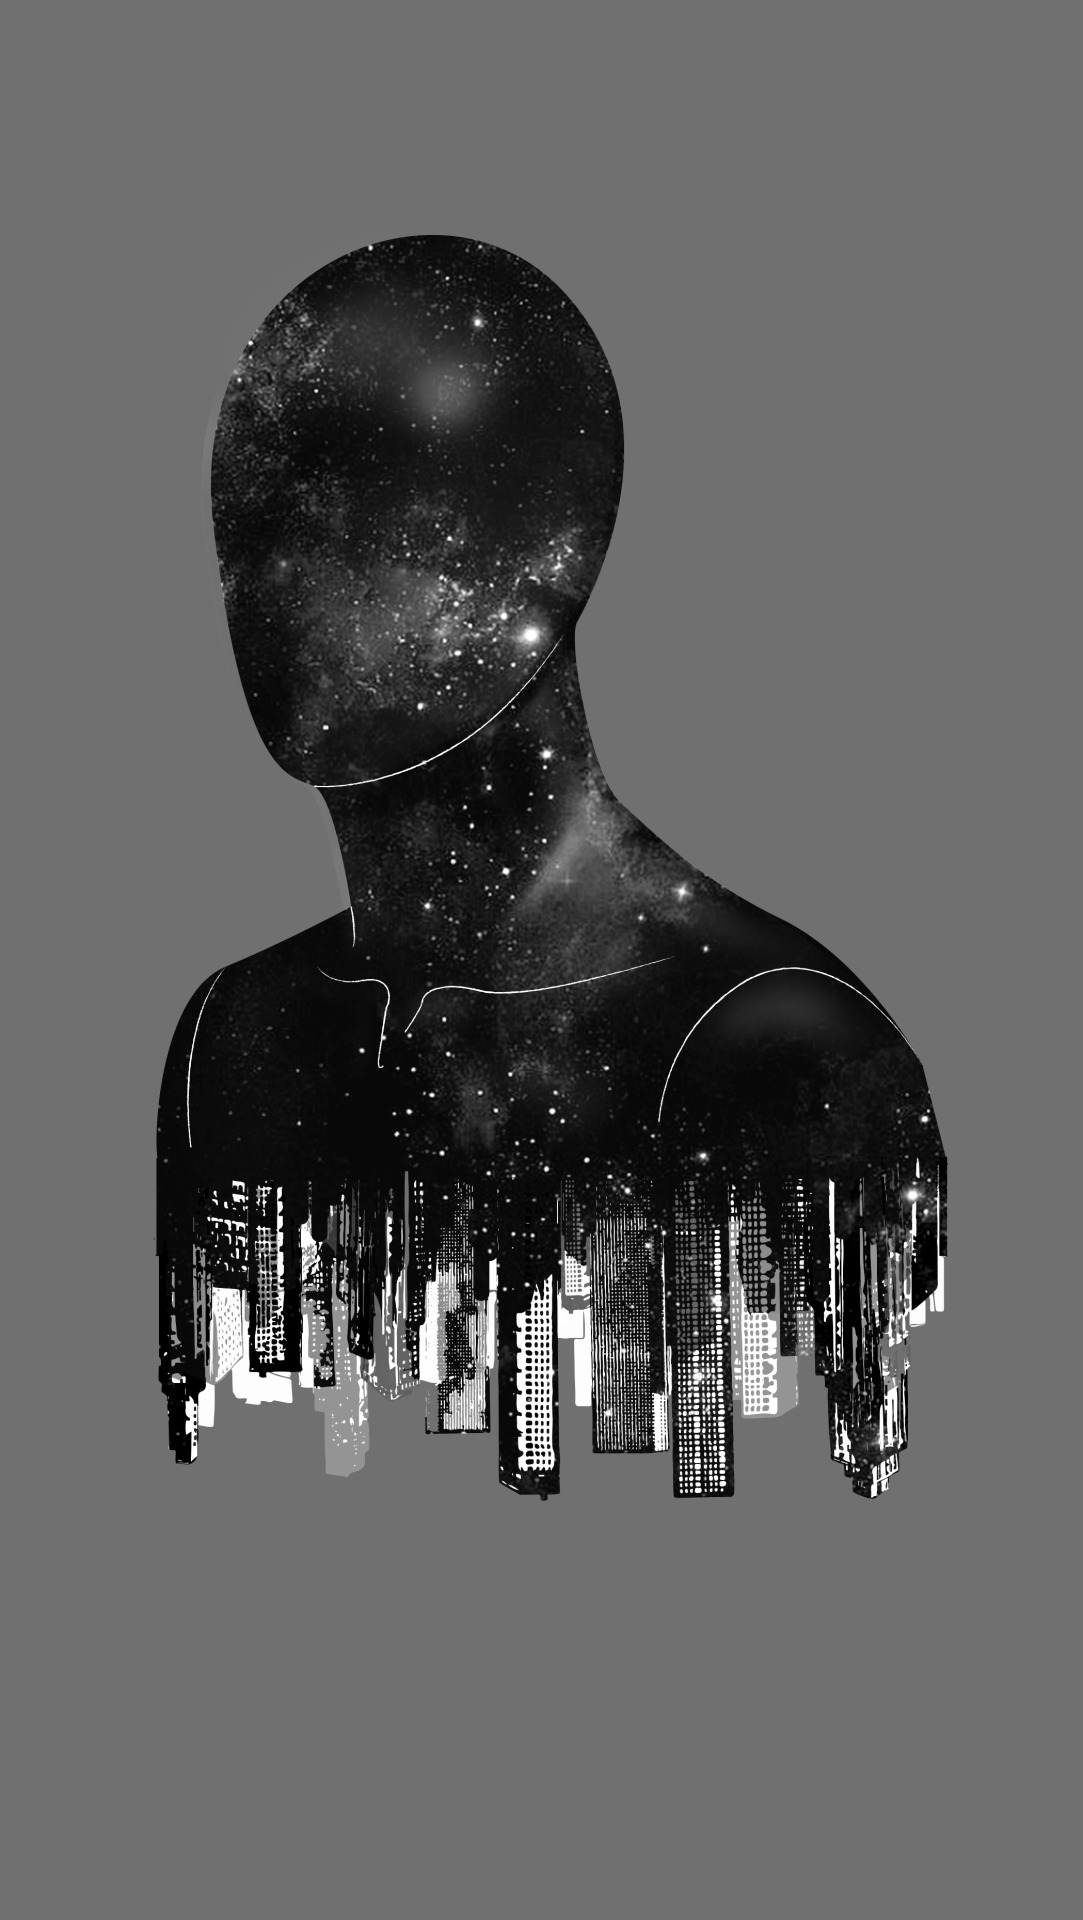 Digital art selected for the Daily Inspiration #2116